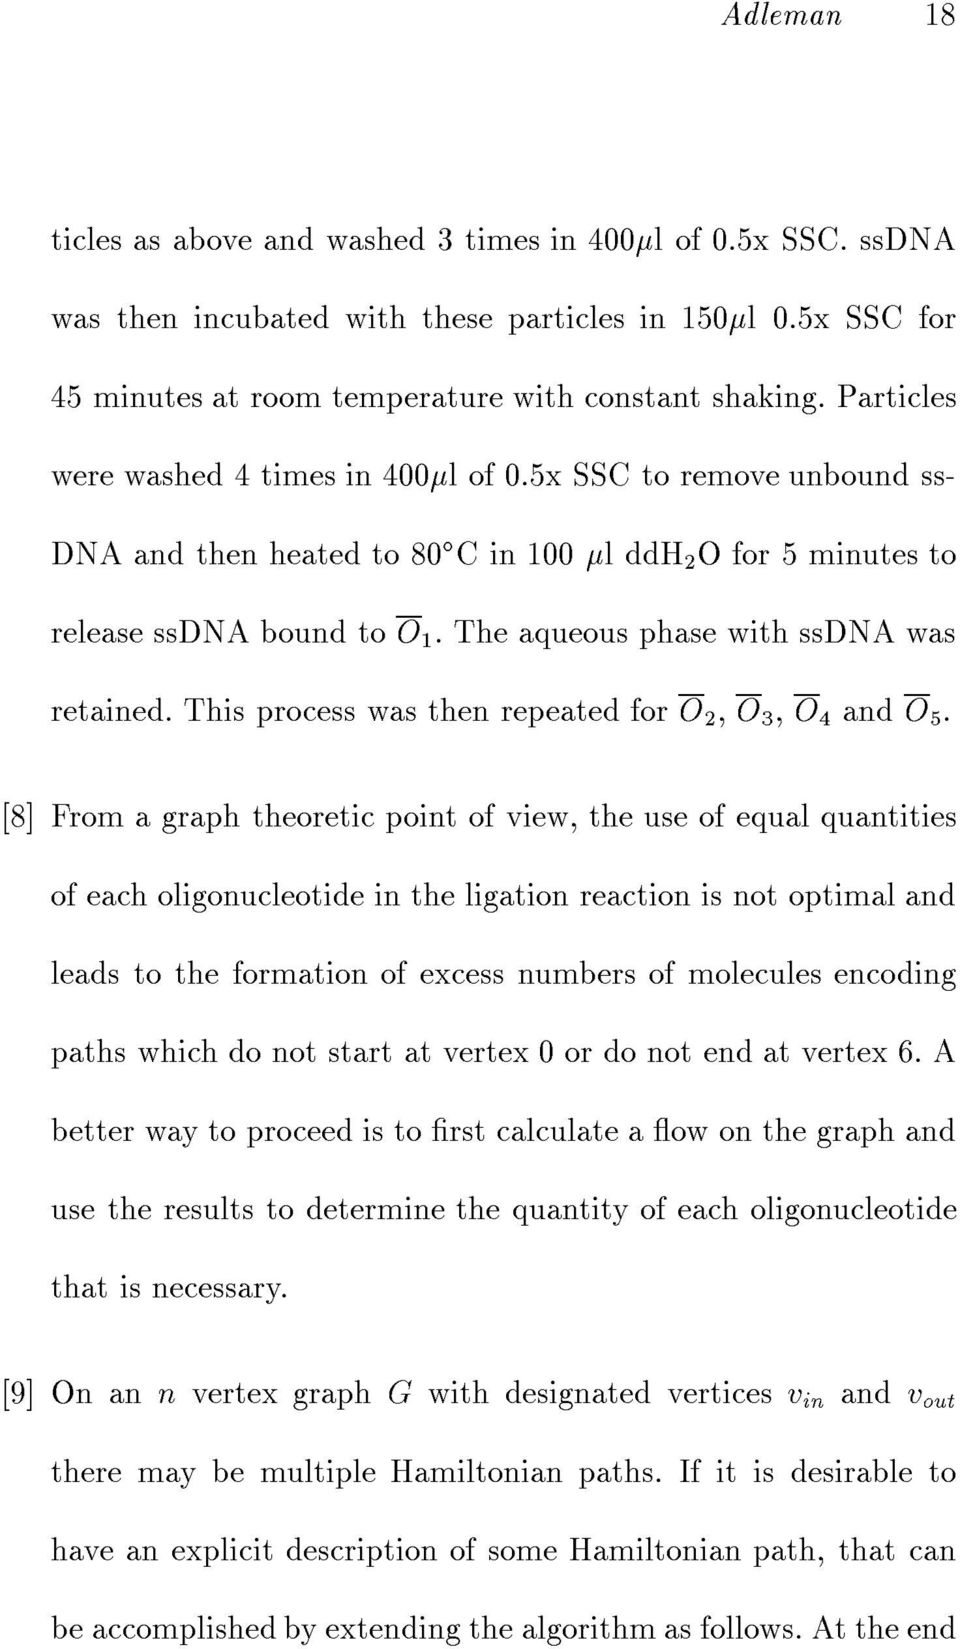 The aqueous phase with ssdna was retained. This process was then repeated for O 2, O 3, O 4 and O 5.